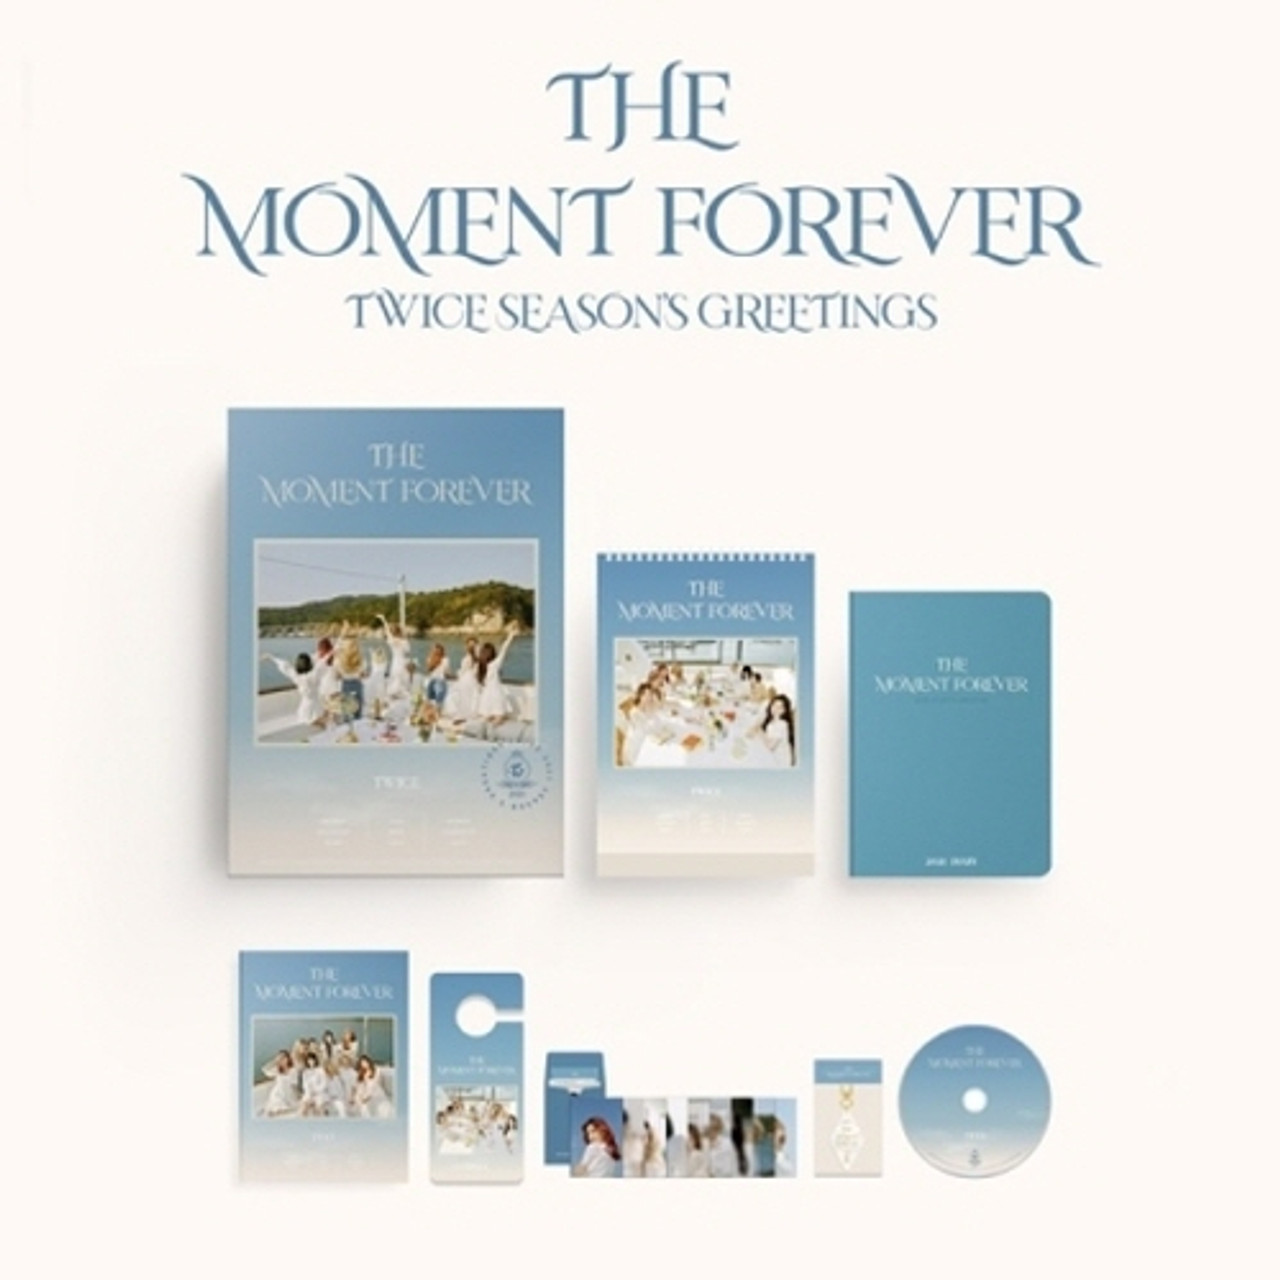 TWICE - 2021 SEASONS GREETINGS - THE MOMENT FOREVER